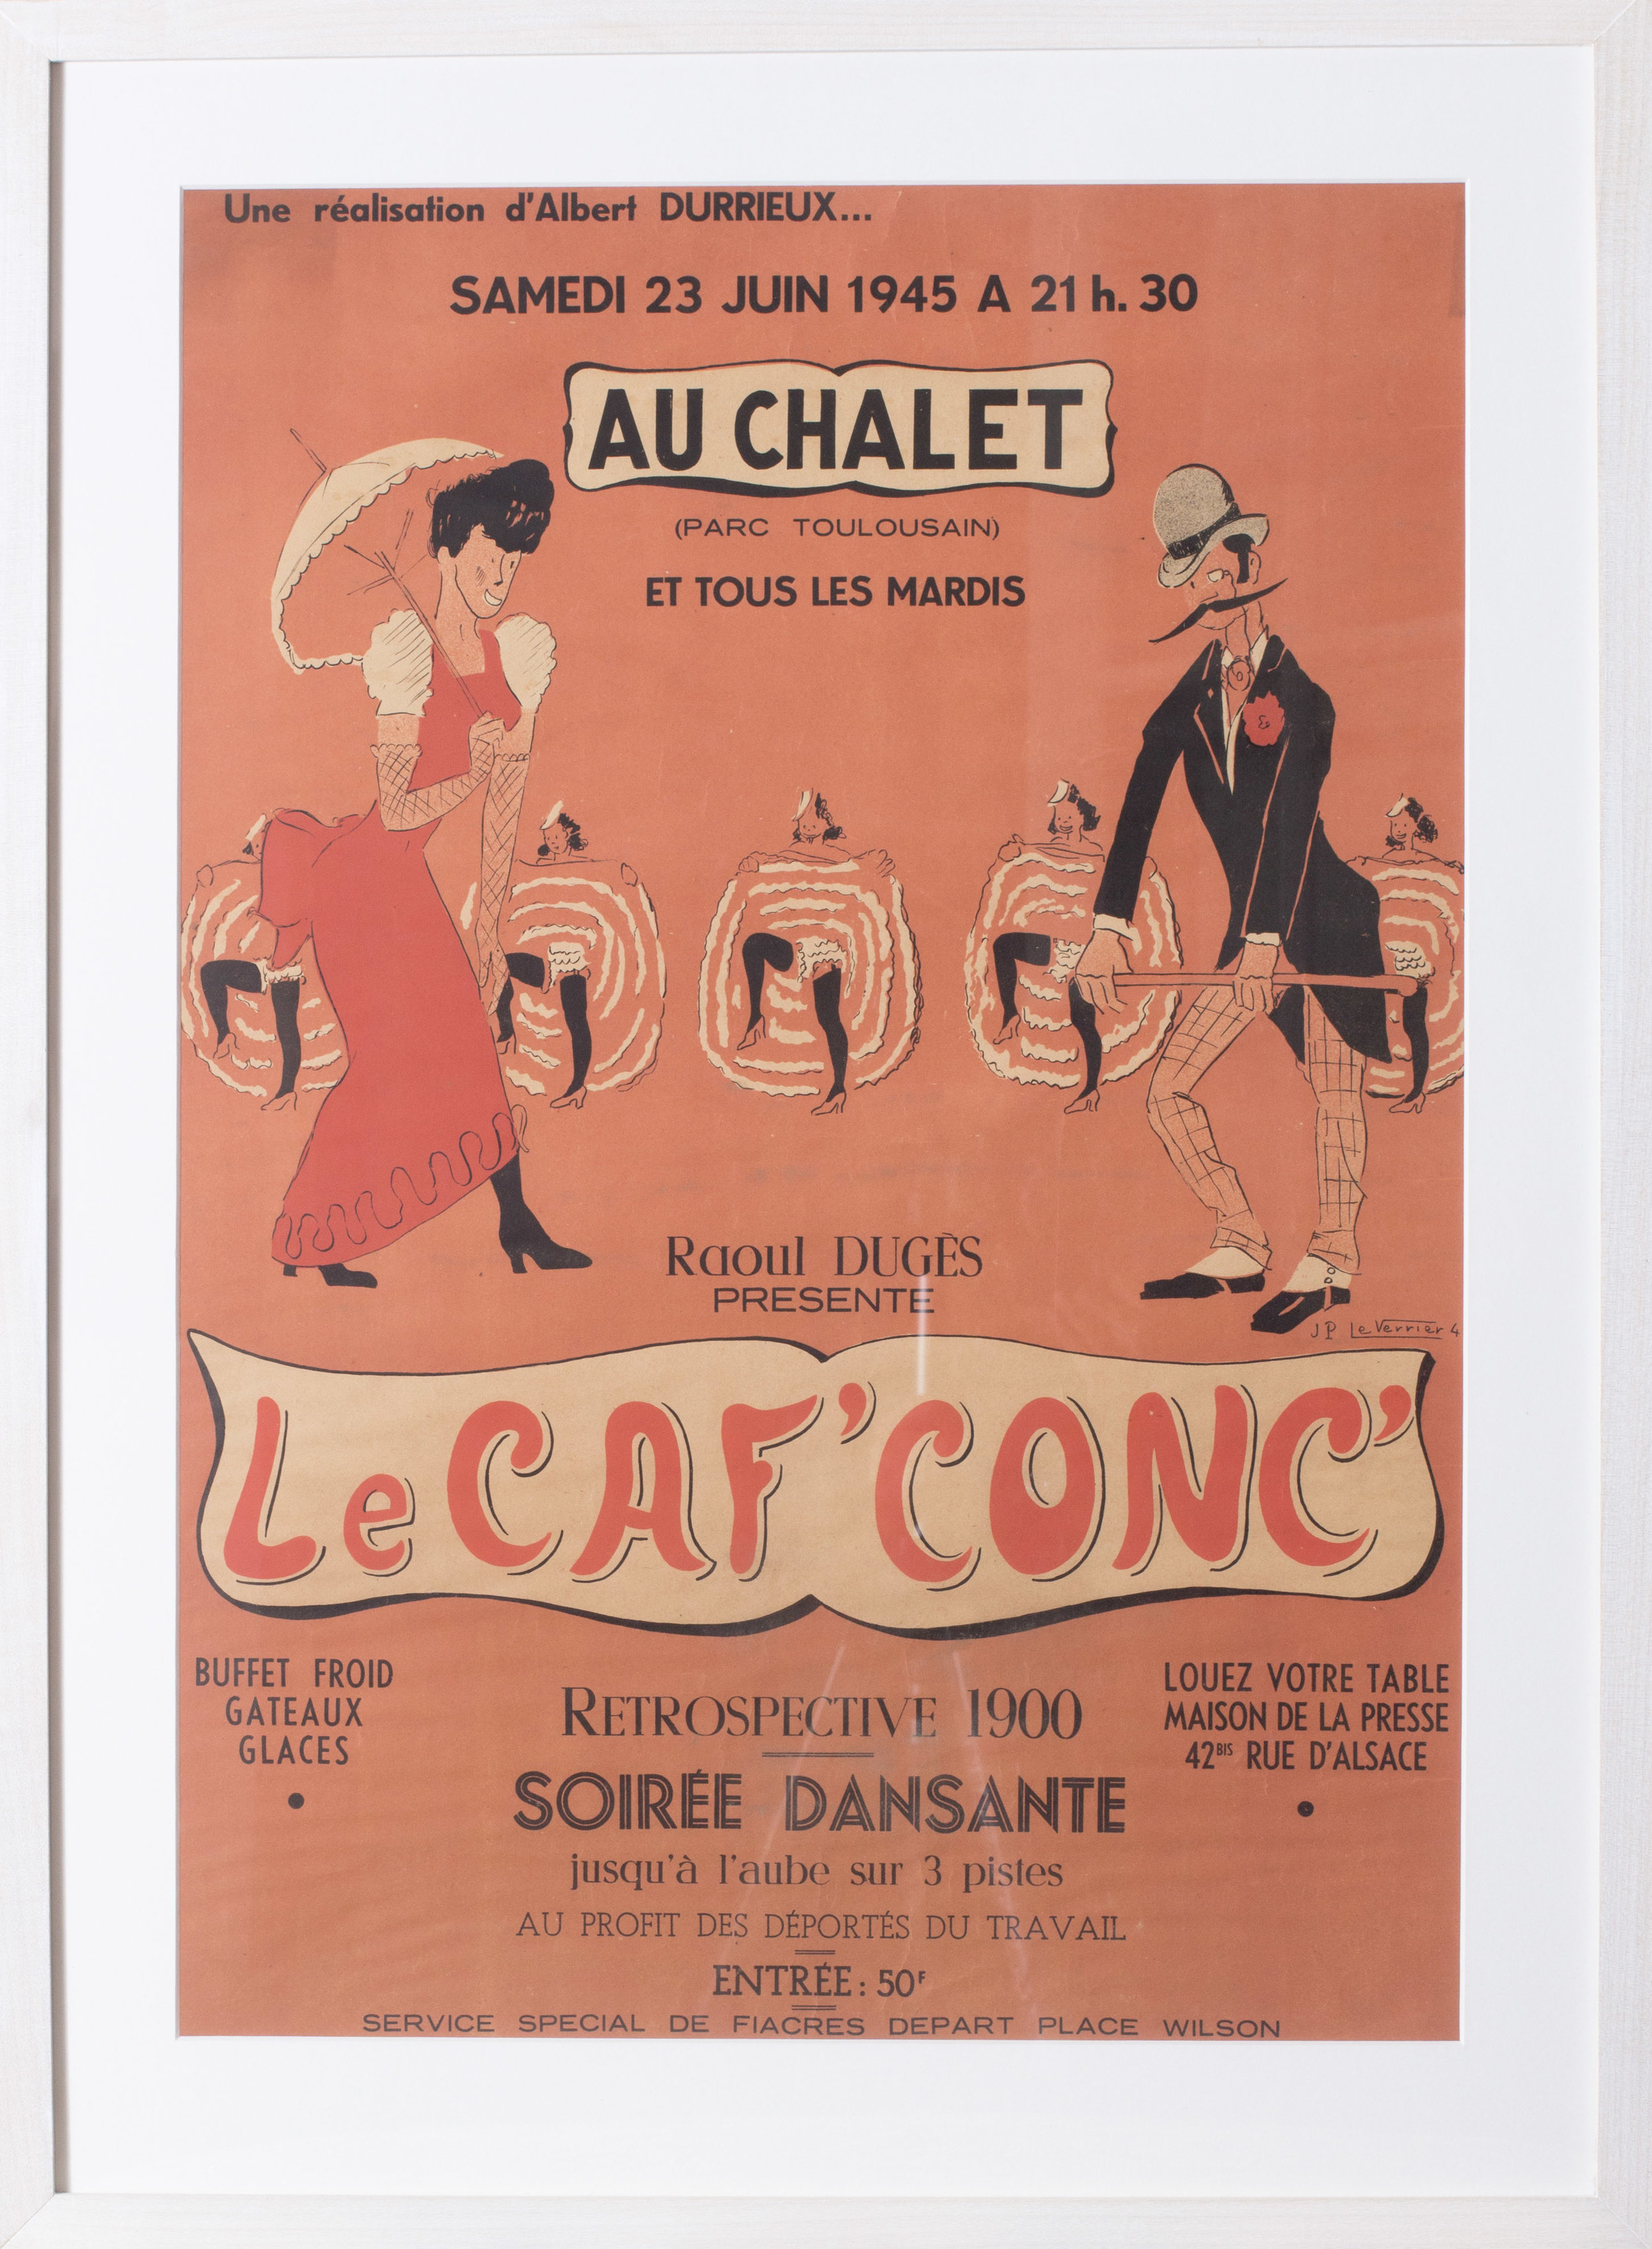 Le Caf' Conc   A poster for a post-liberation costume ball (retrospective 1900) on 23rd June 1945 designed by Jean Paul Le Verrier (1922-1996)  79.3 x 58.3cm.  Condition: Minor creases, good order overall. Well presented in a limed wood frame. Behind perspex in a white mount.   Price: £600